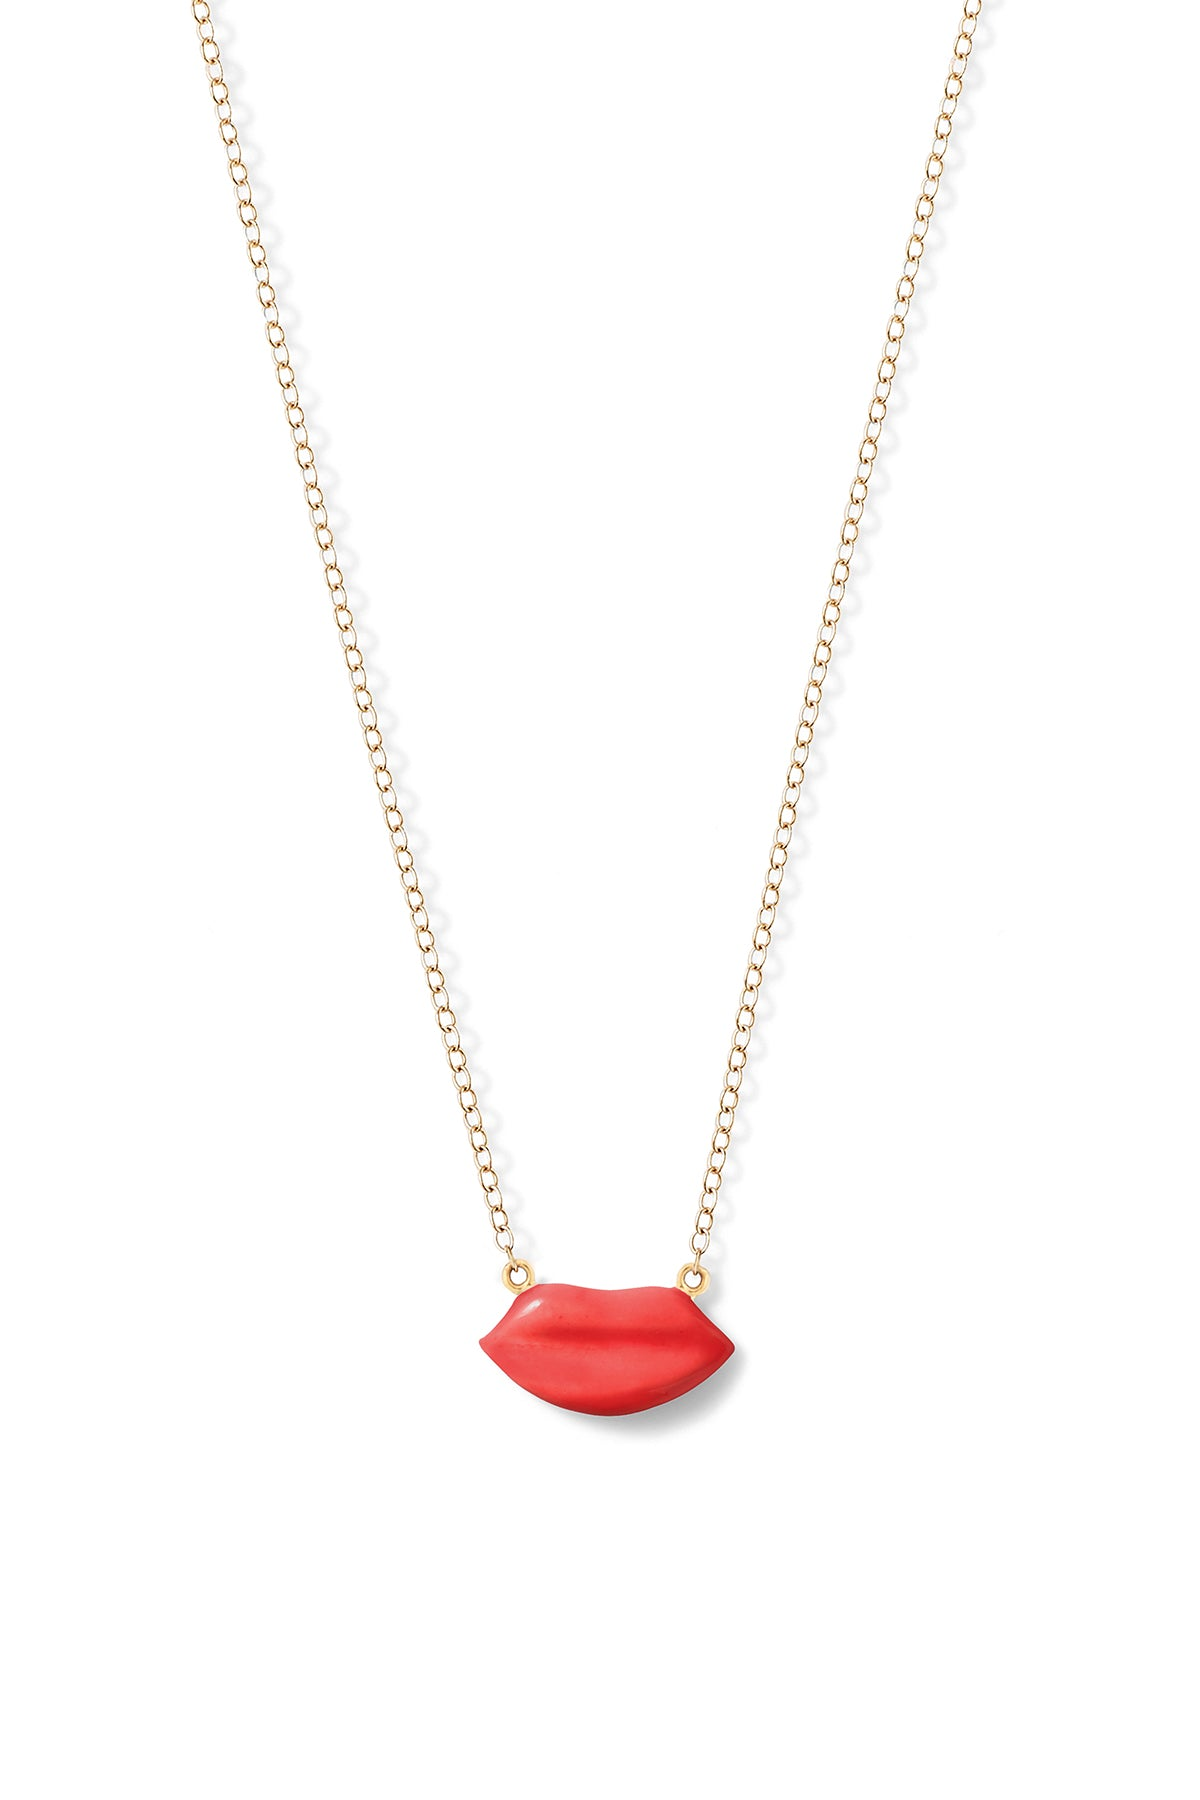 Enamel Lip Necklace - In Stock